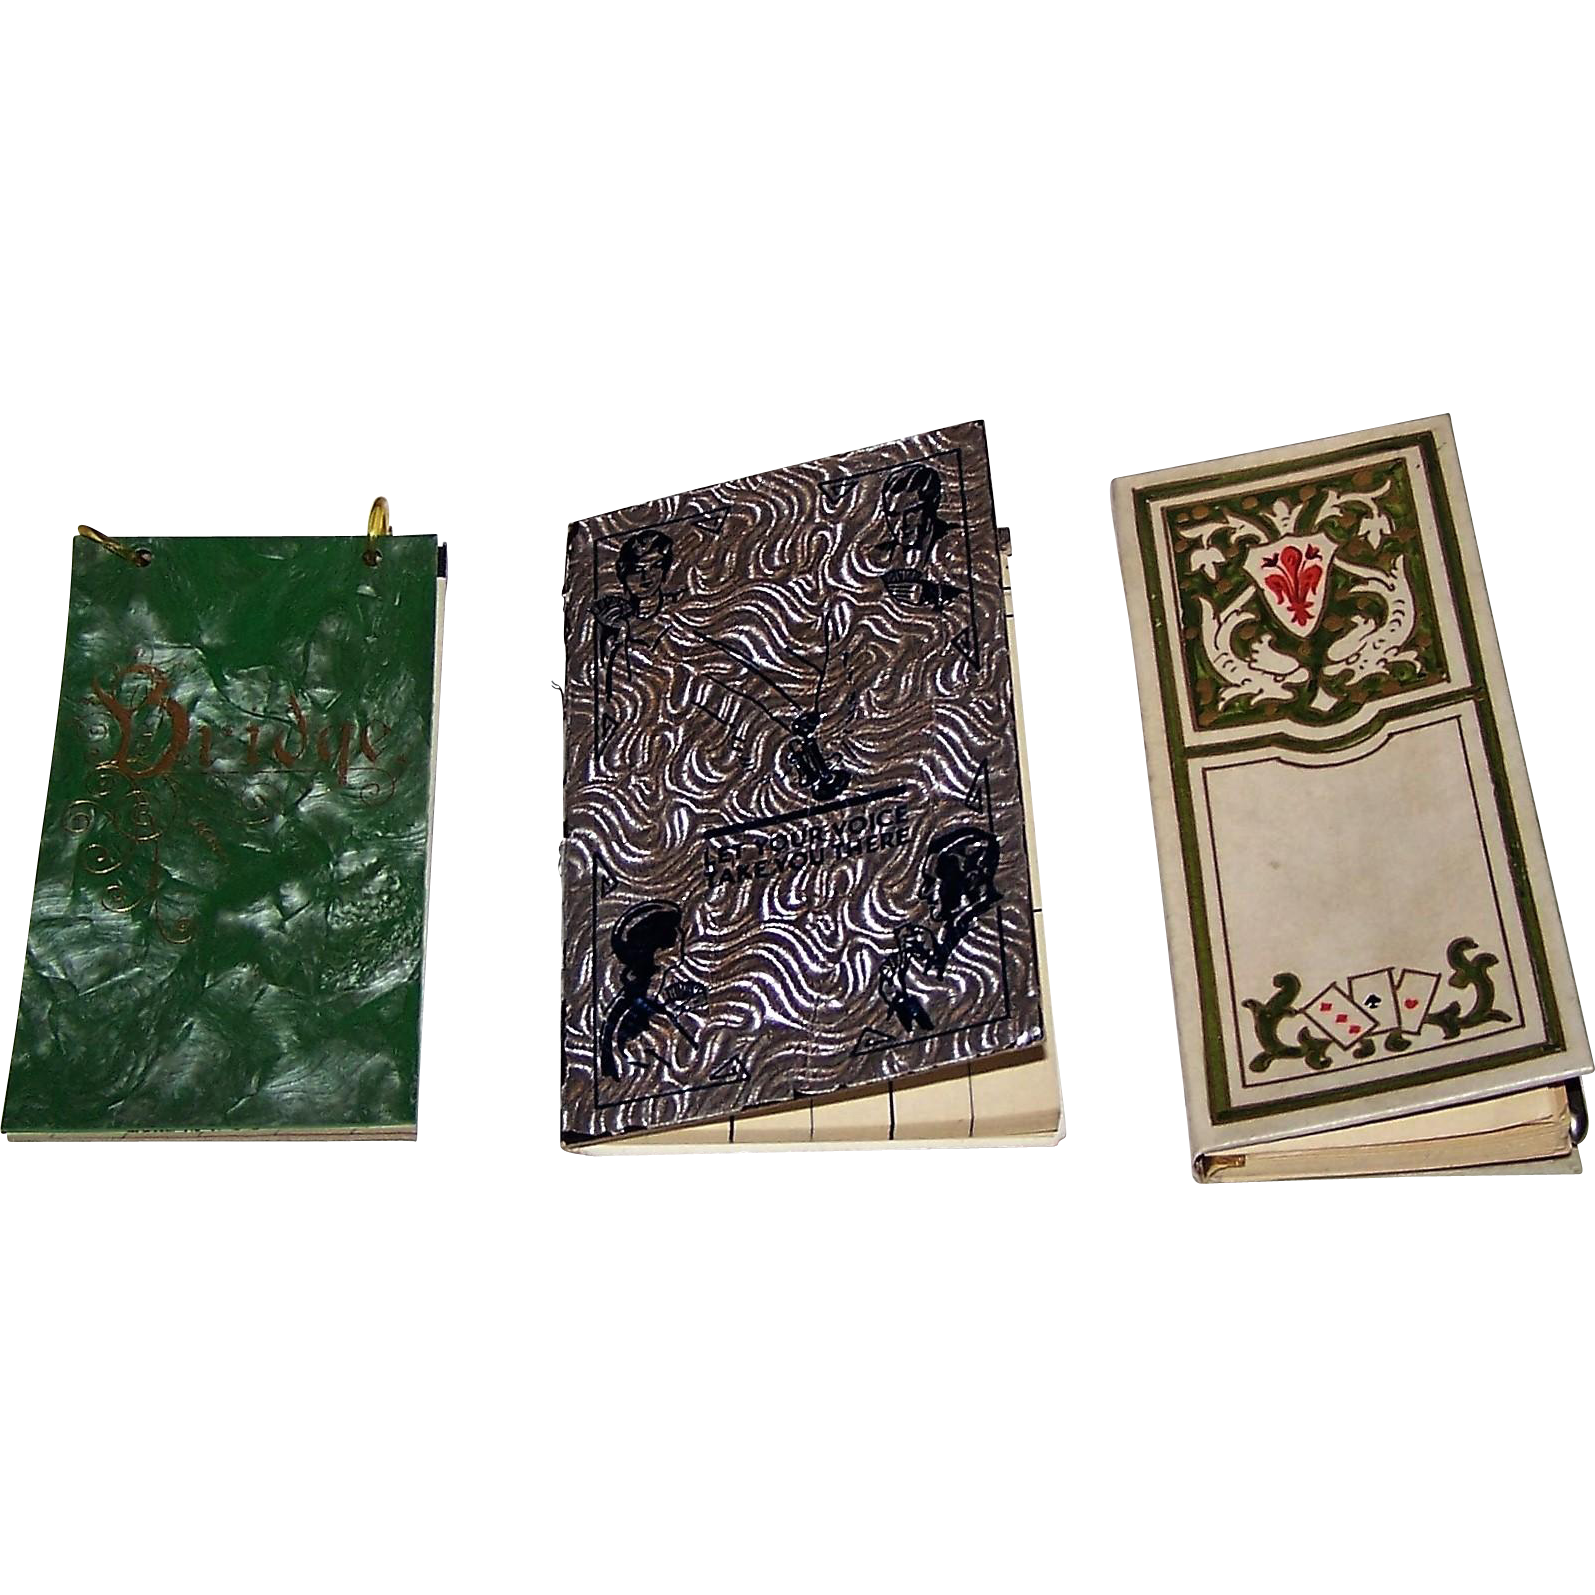 "3 Card Game Score Pads, $15/ea.: (i) Art Deco Auction Bridge Score Pad, Plastic Covers, c.1930; (ii) Chesapeake and Potomac Telephone Contract Bridge Score Pad, c. 1937; and (iii) Giuseppe Giovanni ""Win/Lose"" Score Pad, Schwan-Bleistift Fabrik Pencil"